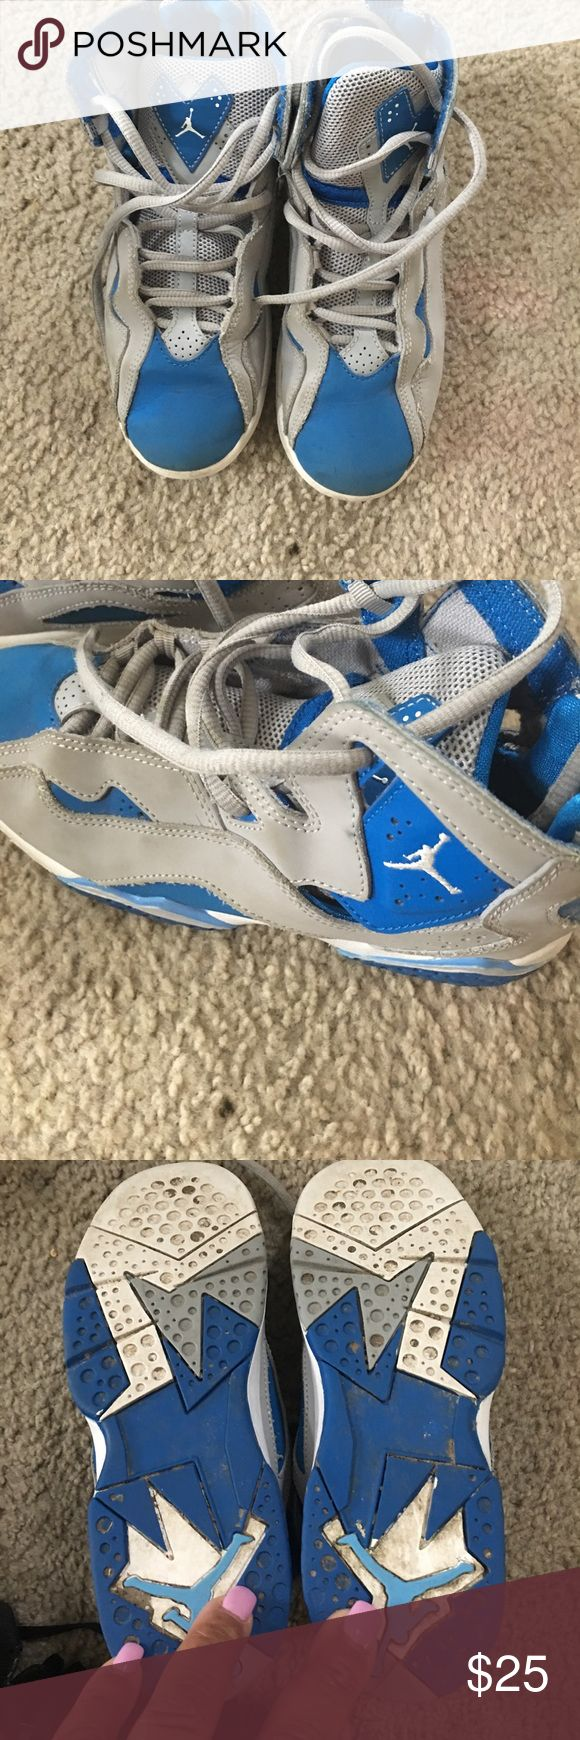 Kids Jordan tennis shoes Blue n grey Nike Jordan's kids tennis shoes jordans Shoes Sneakers